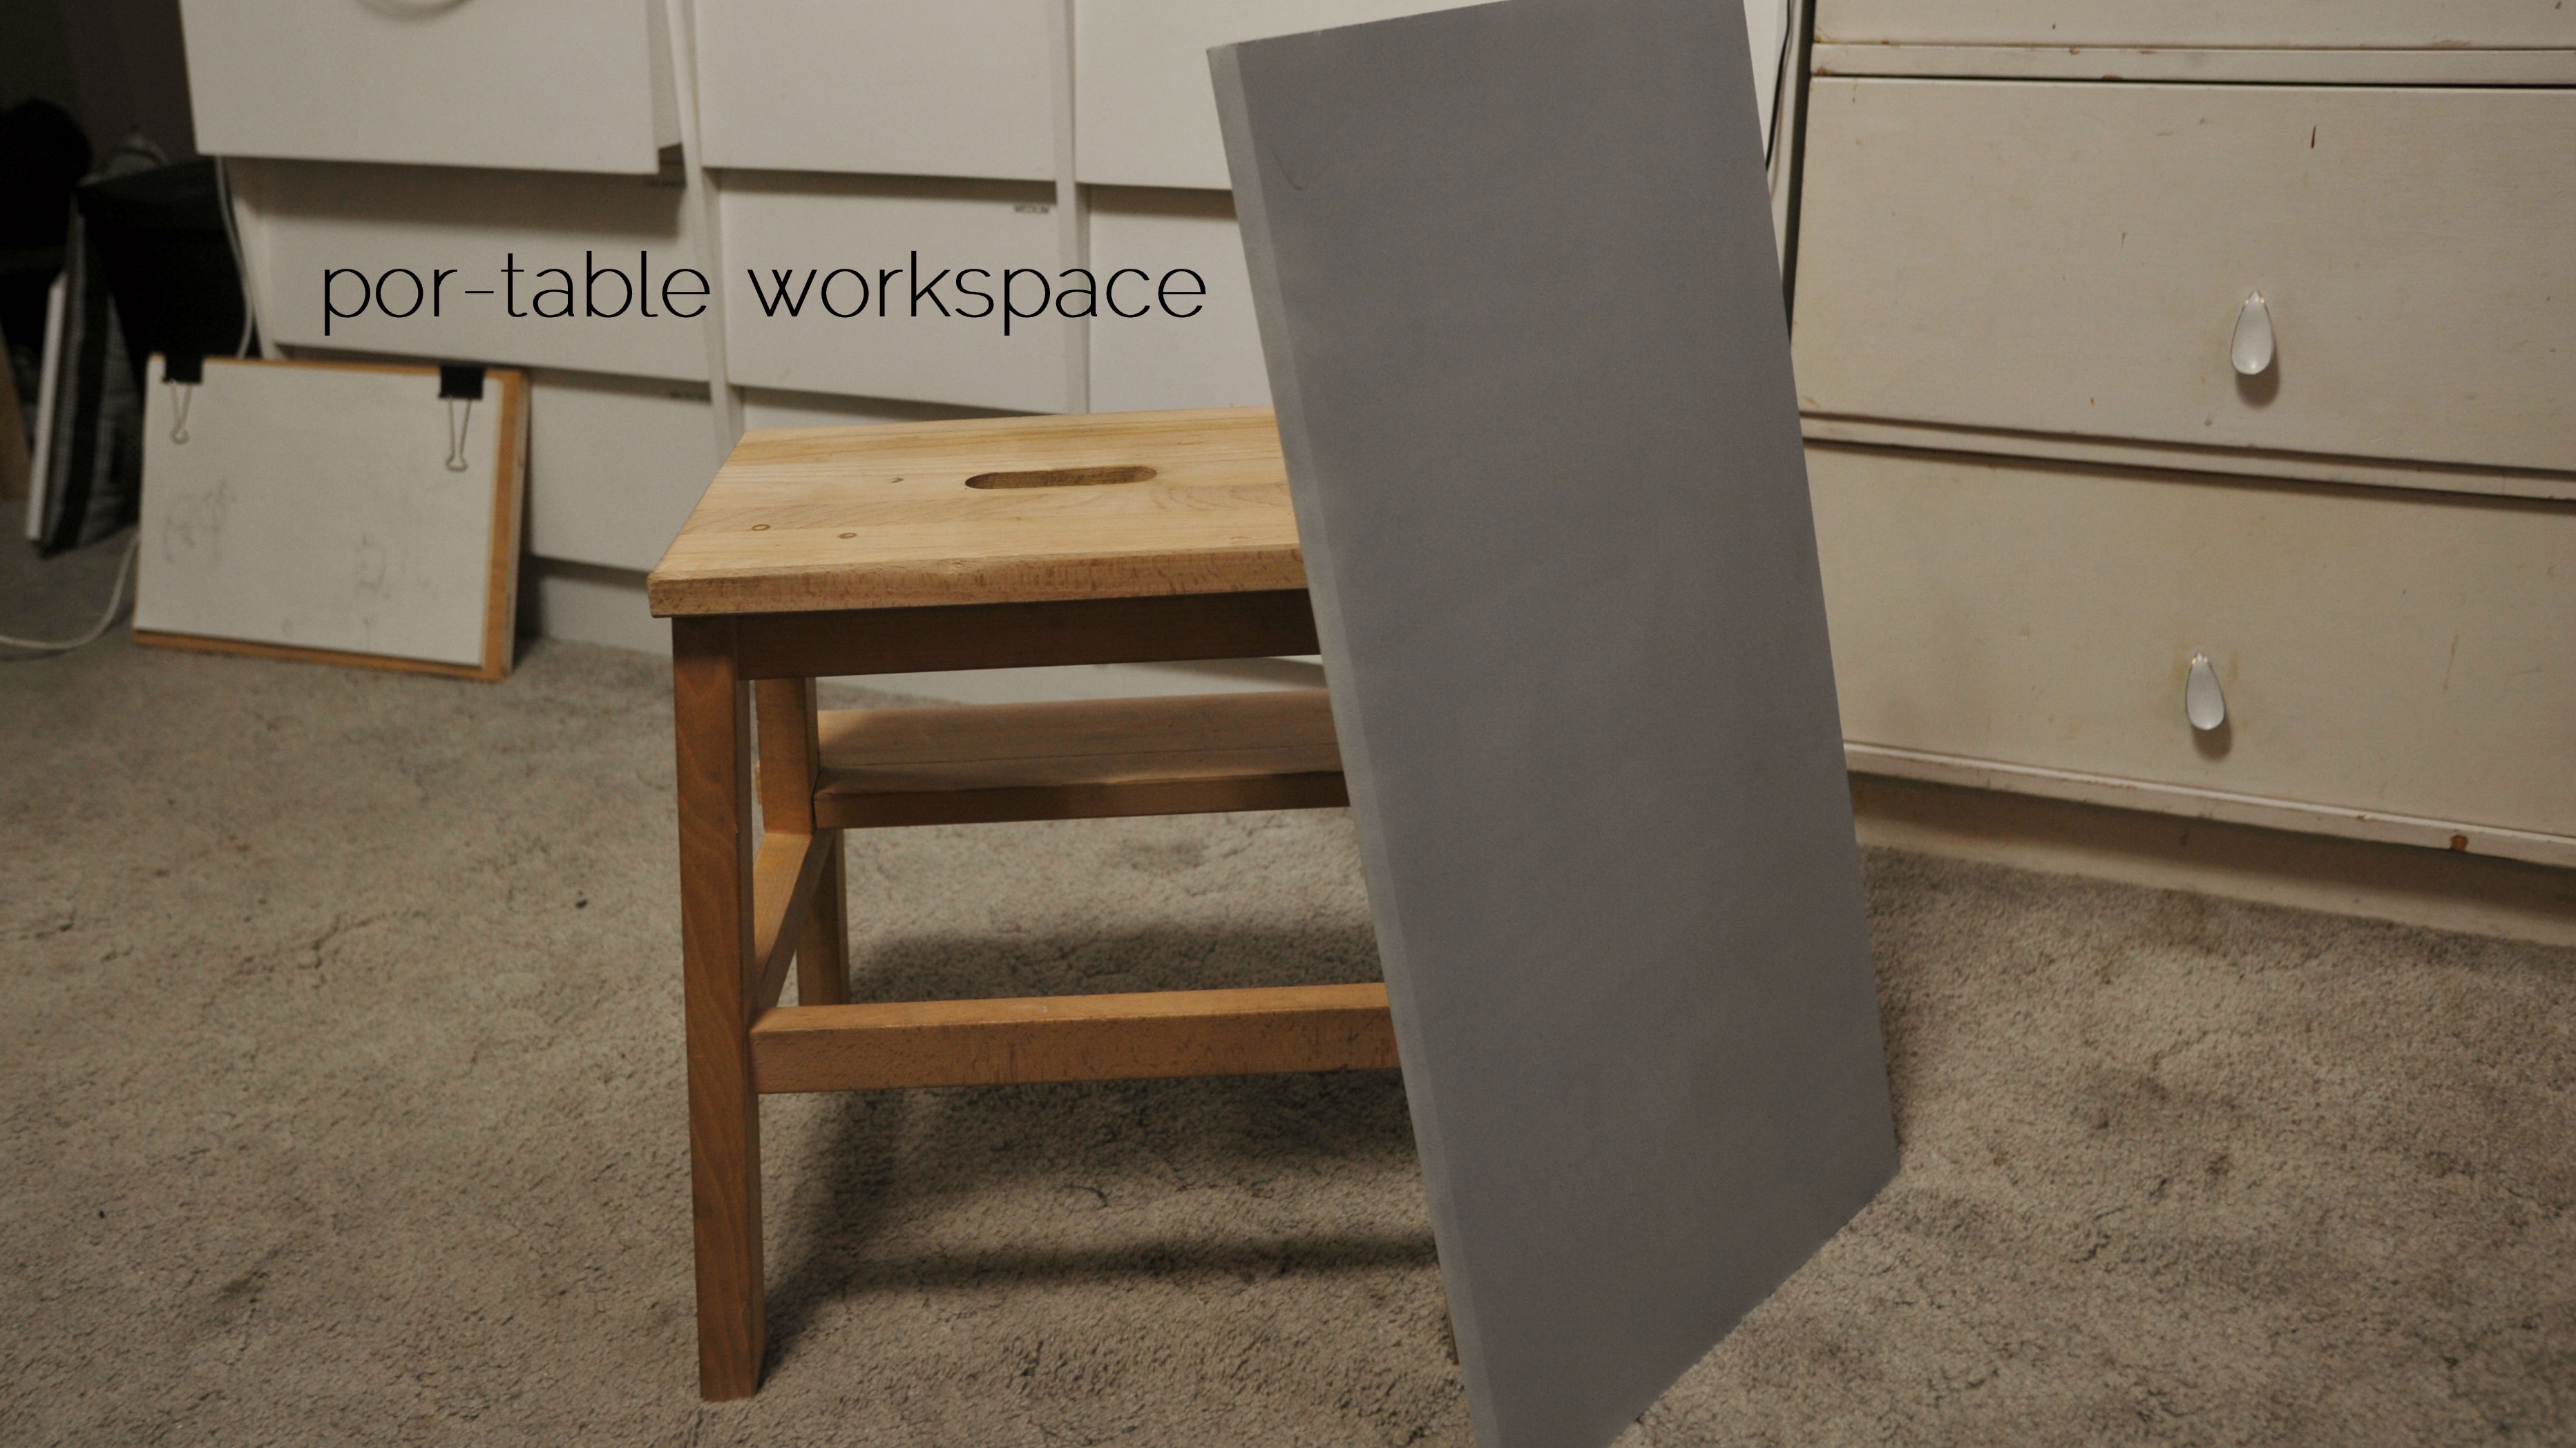 Stool Enhancement: Portable workspace